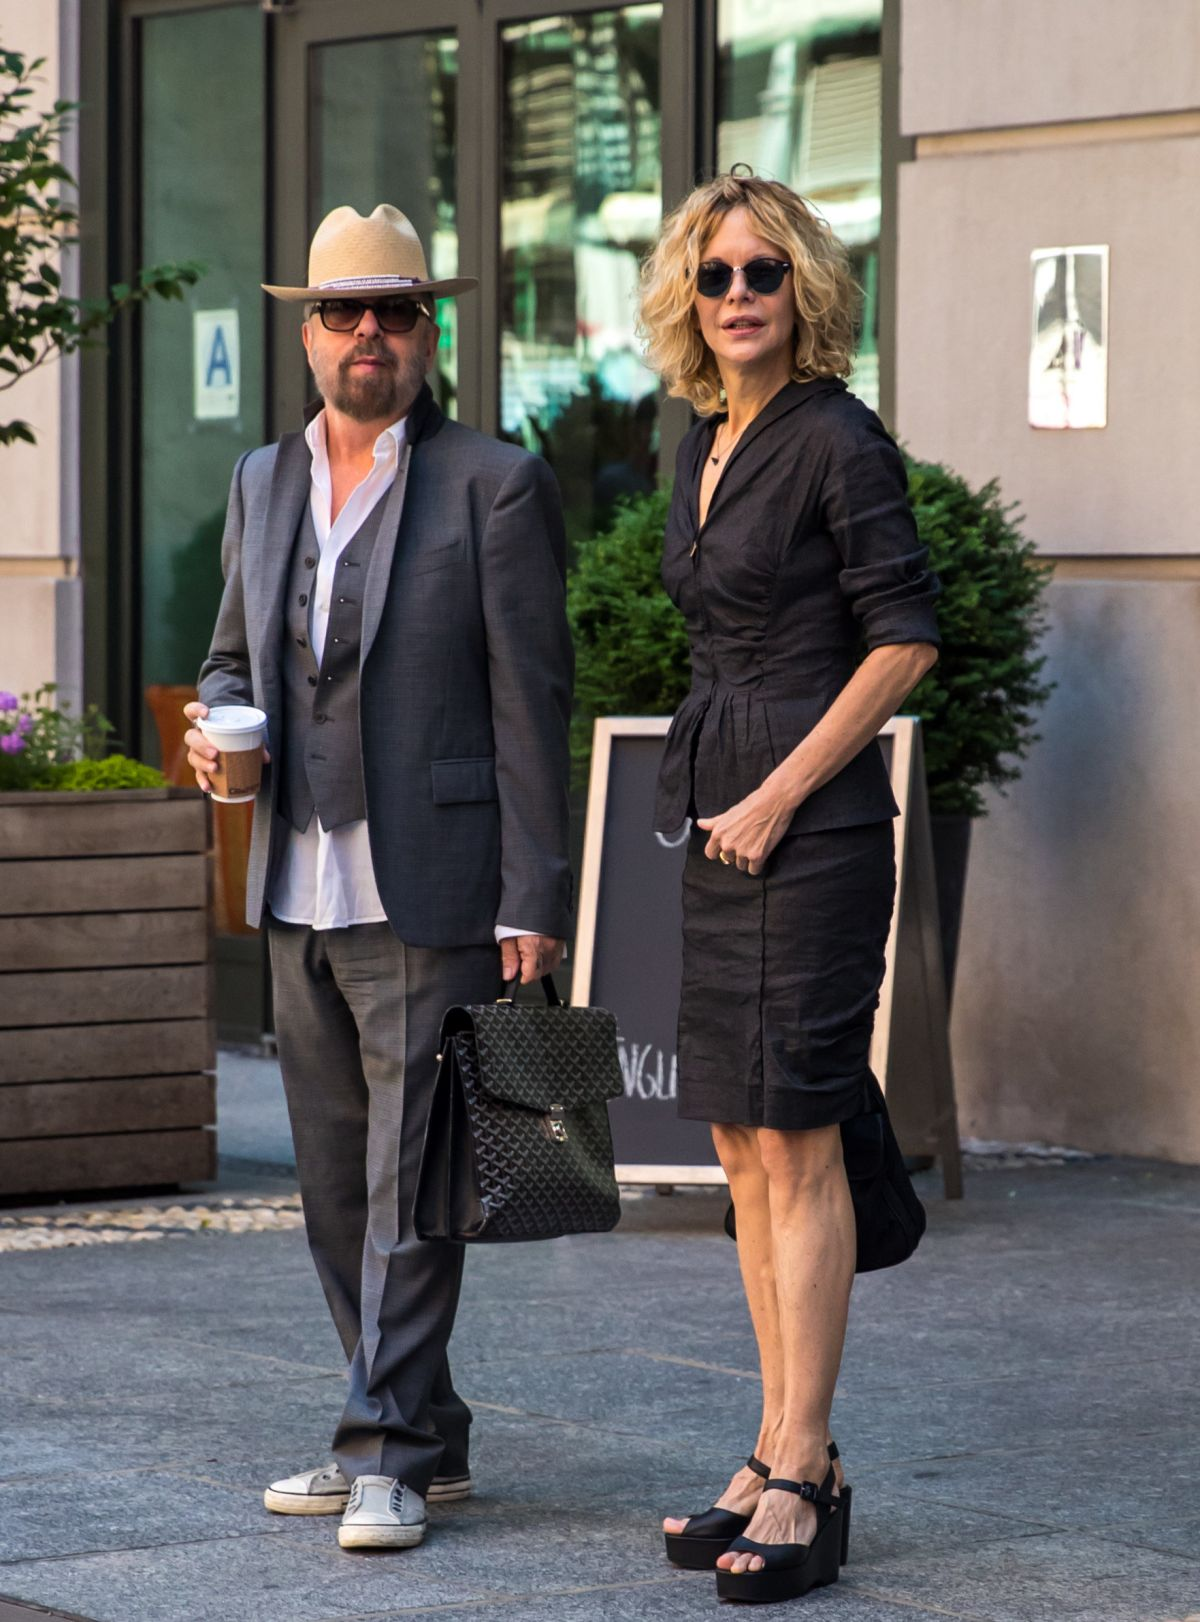 who is matt lauer dating right now